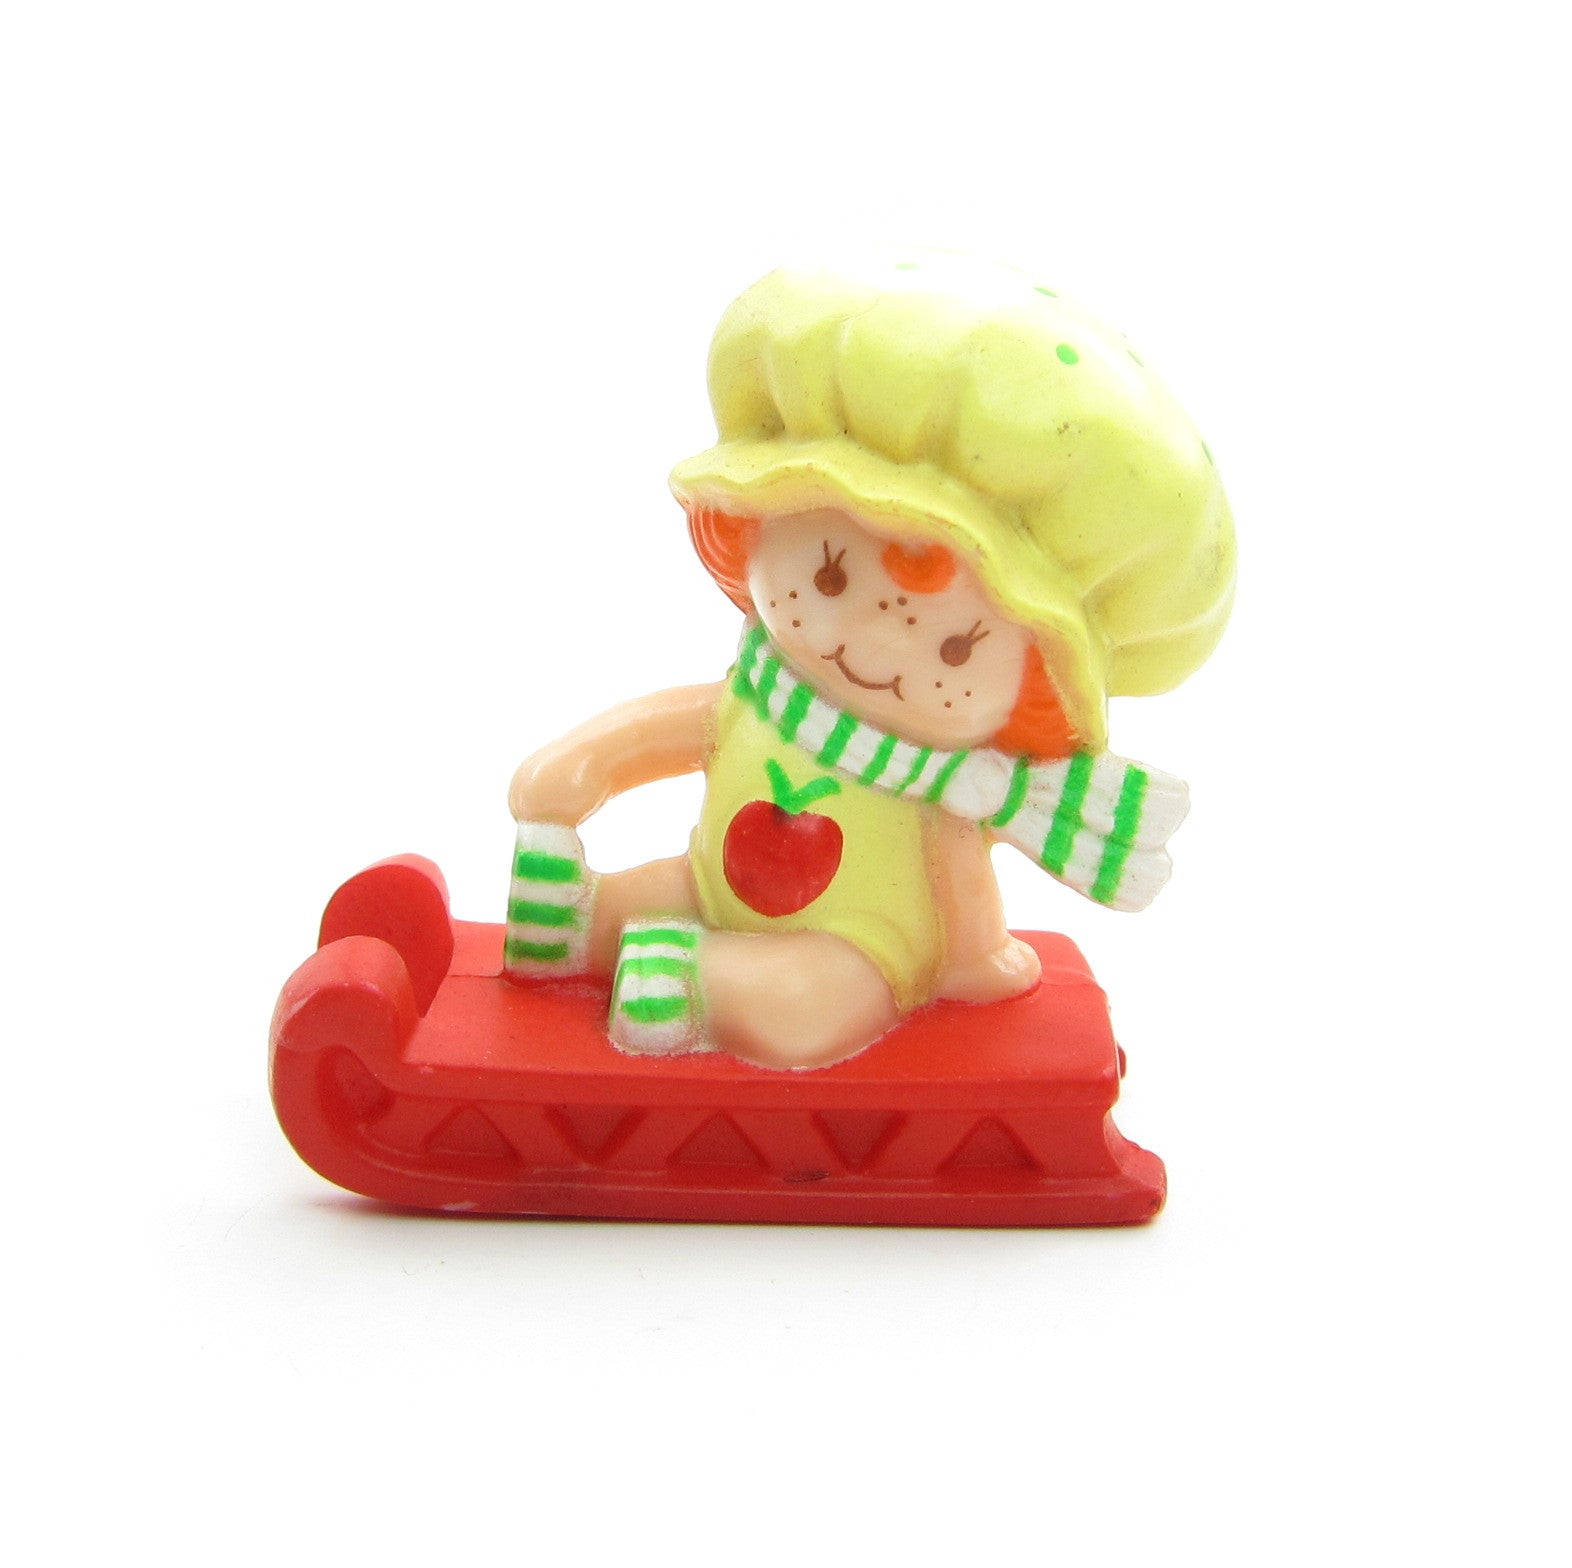 Apple Dumplin on a Sled miniature figurine